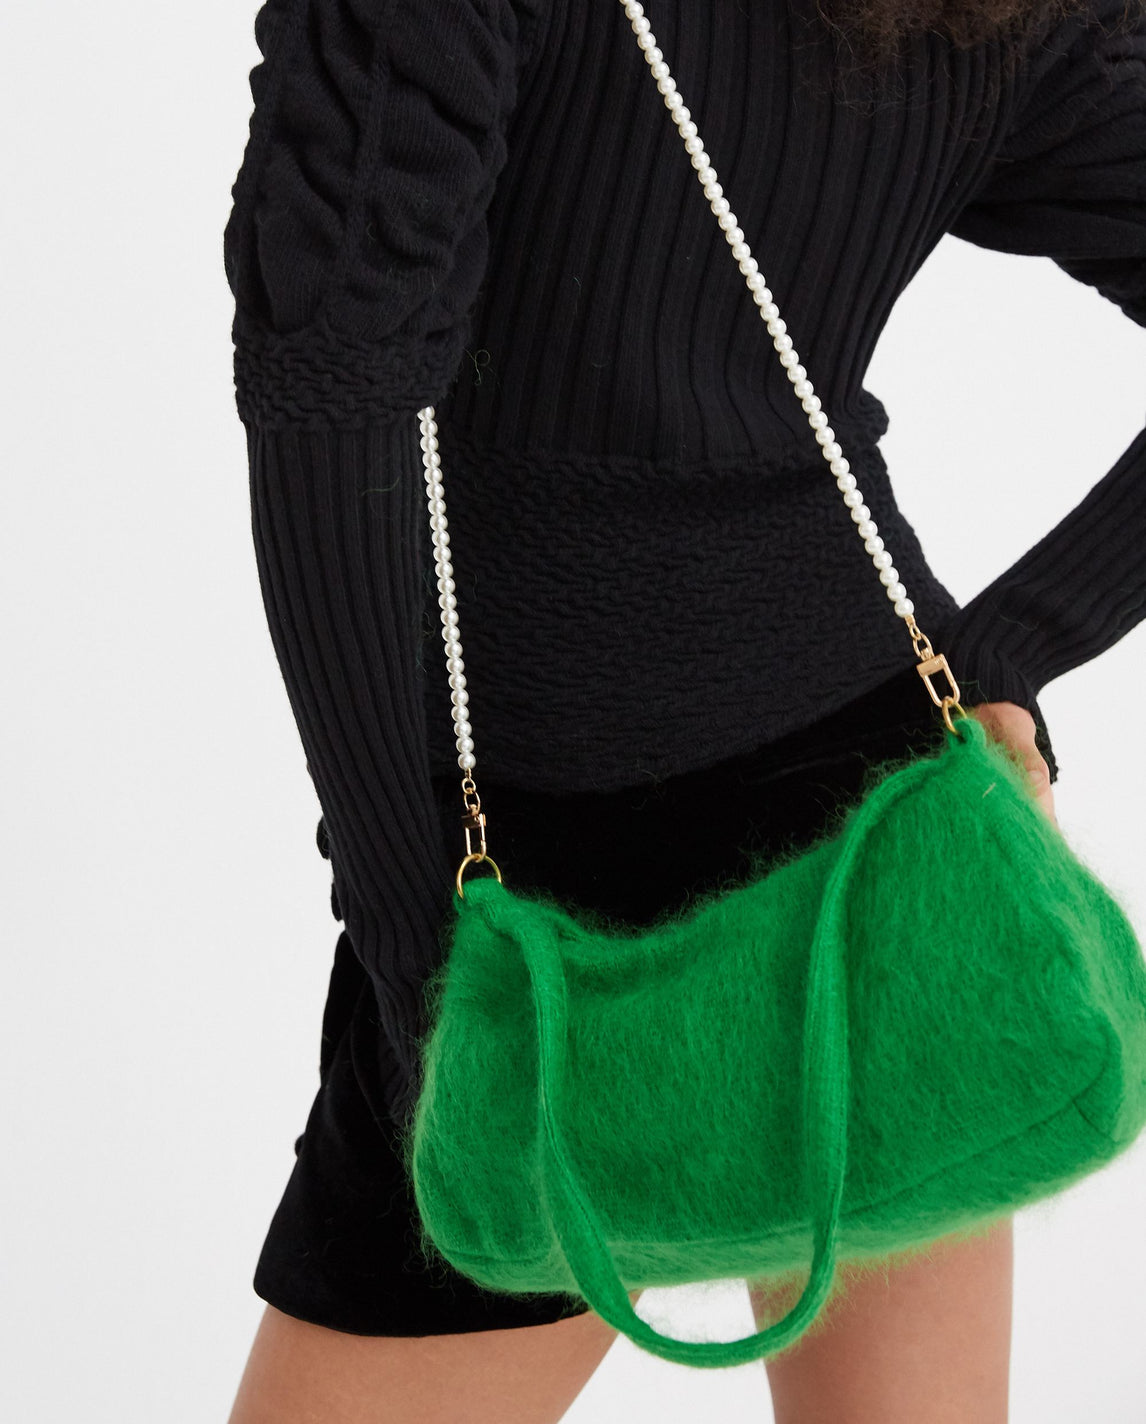 Mohair Lady Bag - Jade Green WOMENS SAMUEL GUI YANG